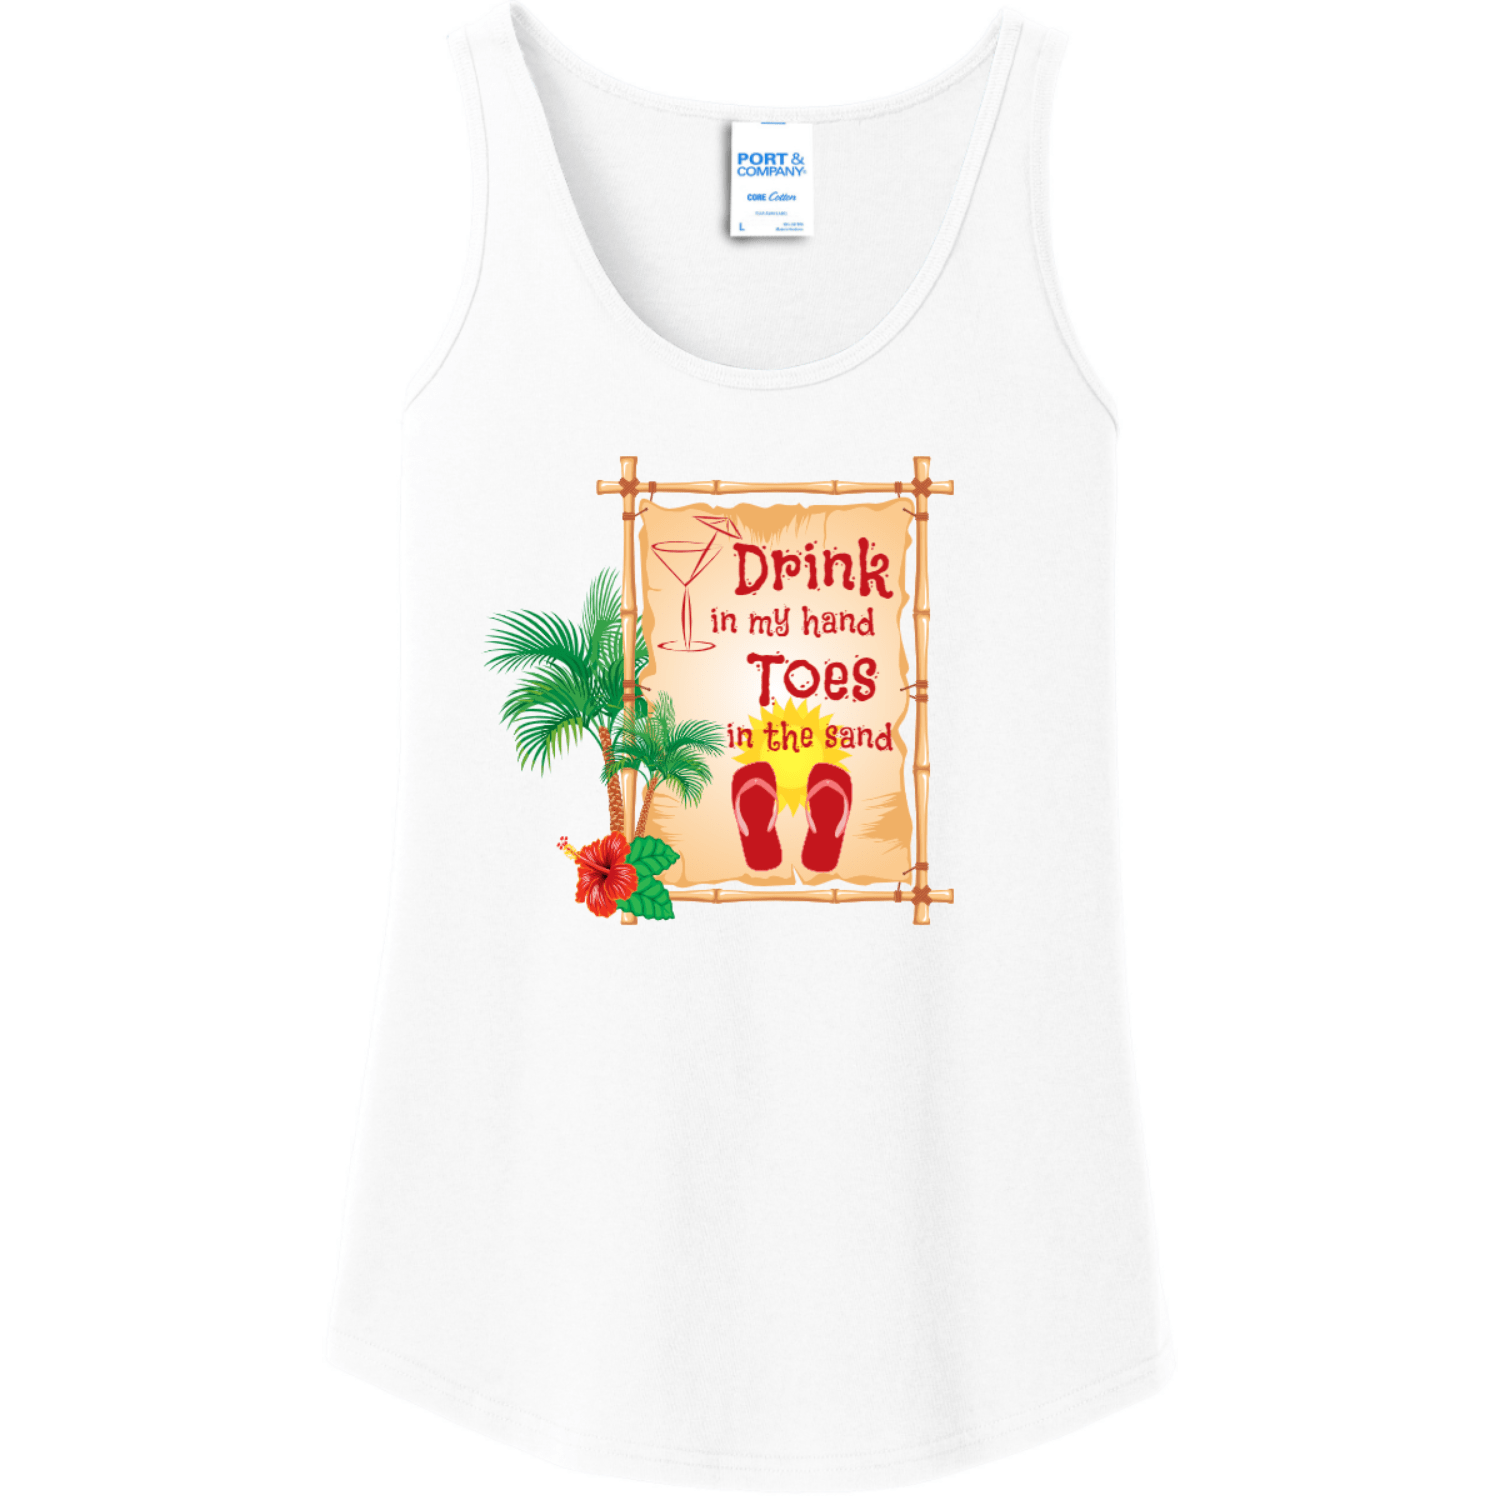 Drink In My Hand Toes In The Sand Tank Top White Port And Company Ladies Tank Top LPC54TT